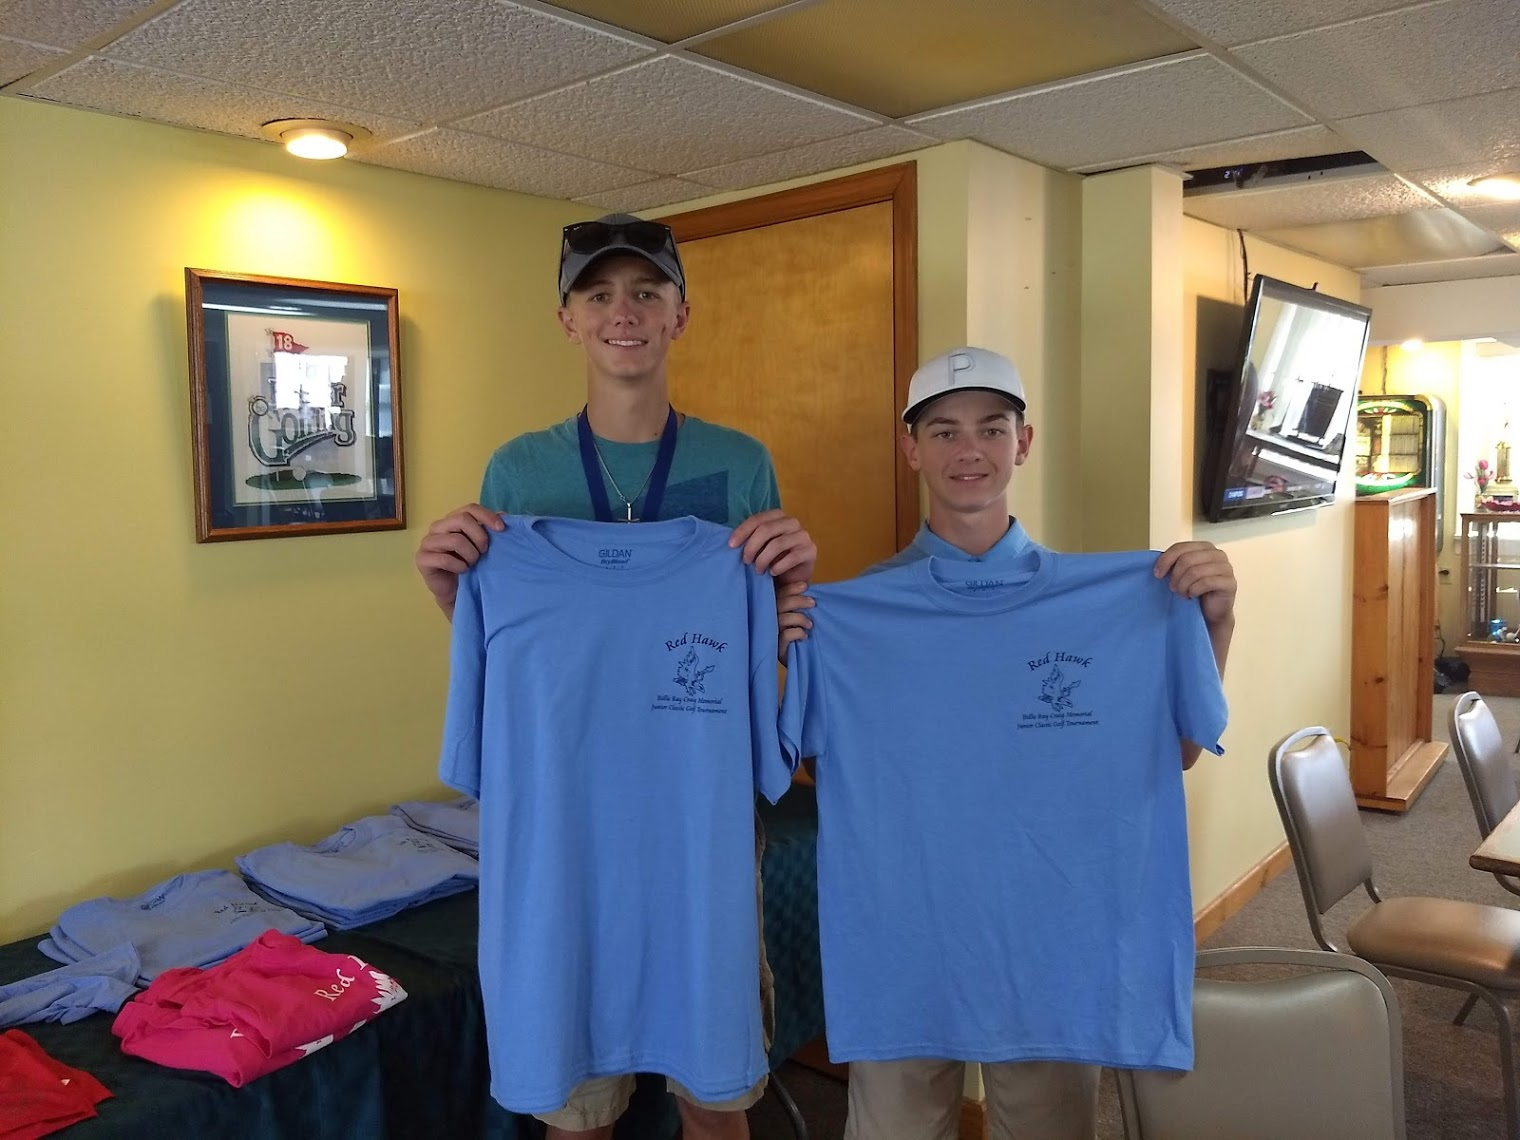 Nile Adcock and Jimmie Reiman hold the Murphy-Wall sponsored shirts at the Billie Ray Craig Memorial Jr Golf Classic